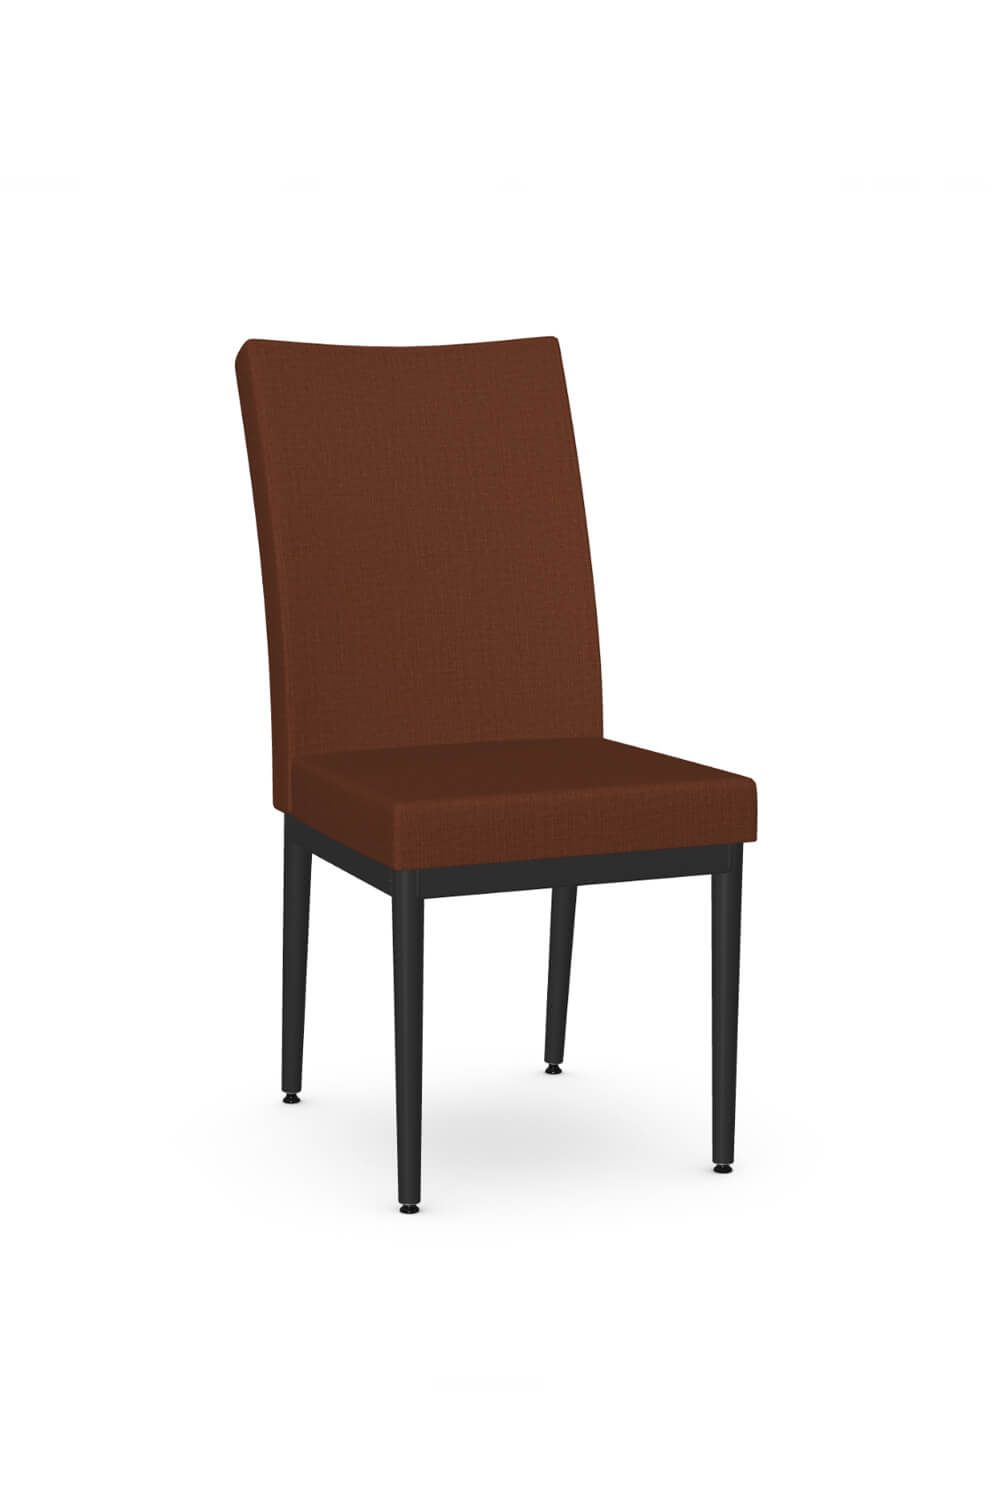 Amisco's Marlon Upholstered Modern Dining Chair